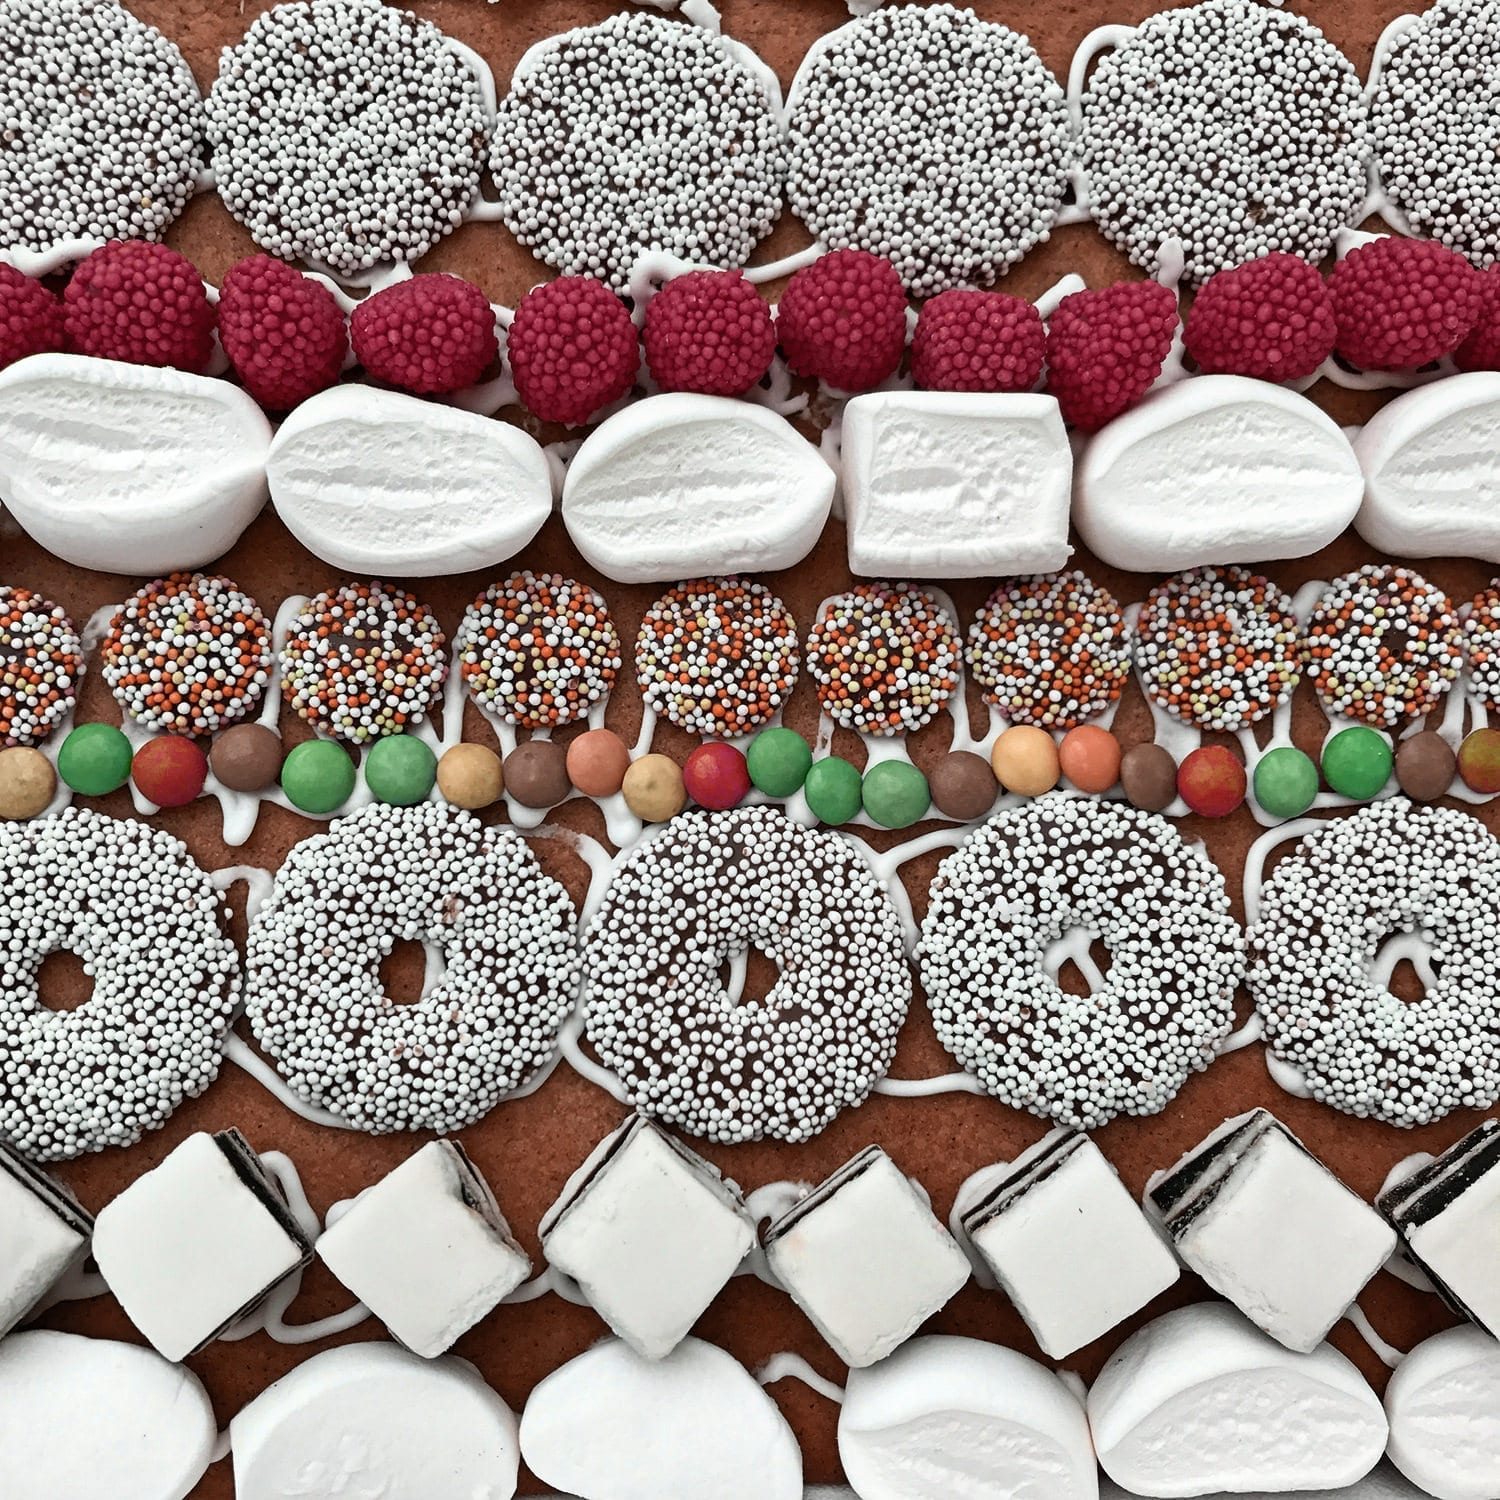 colorful Sweets on a homemade scandinavian gingerbread house